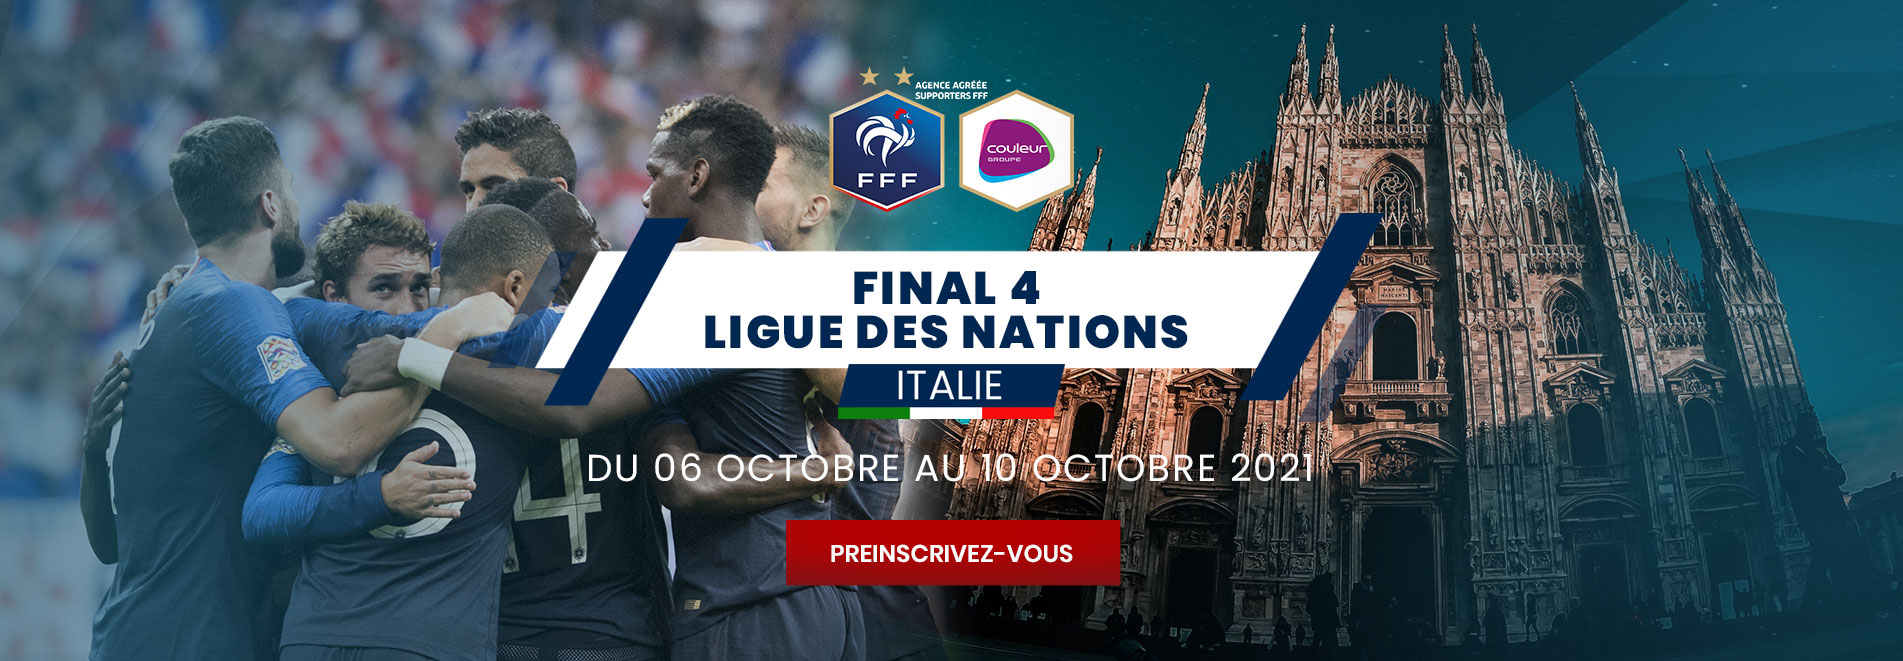 Final 4 Ligue des Nations